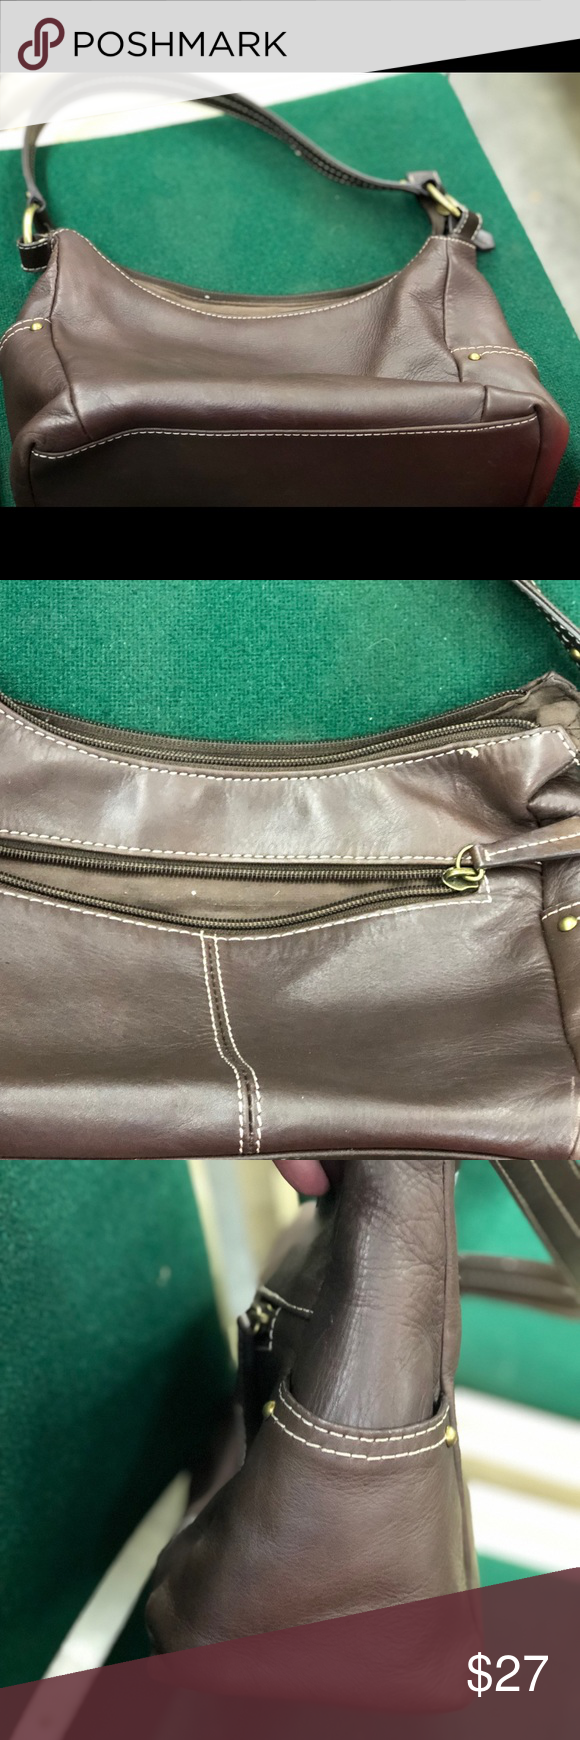 Croft Barrow Brown Leather Purse Beautiful Brown Leather